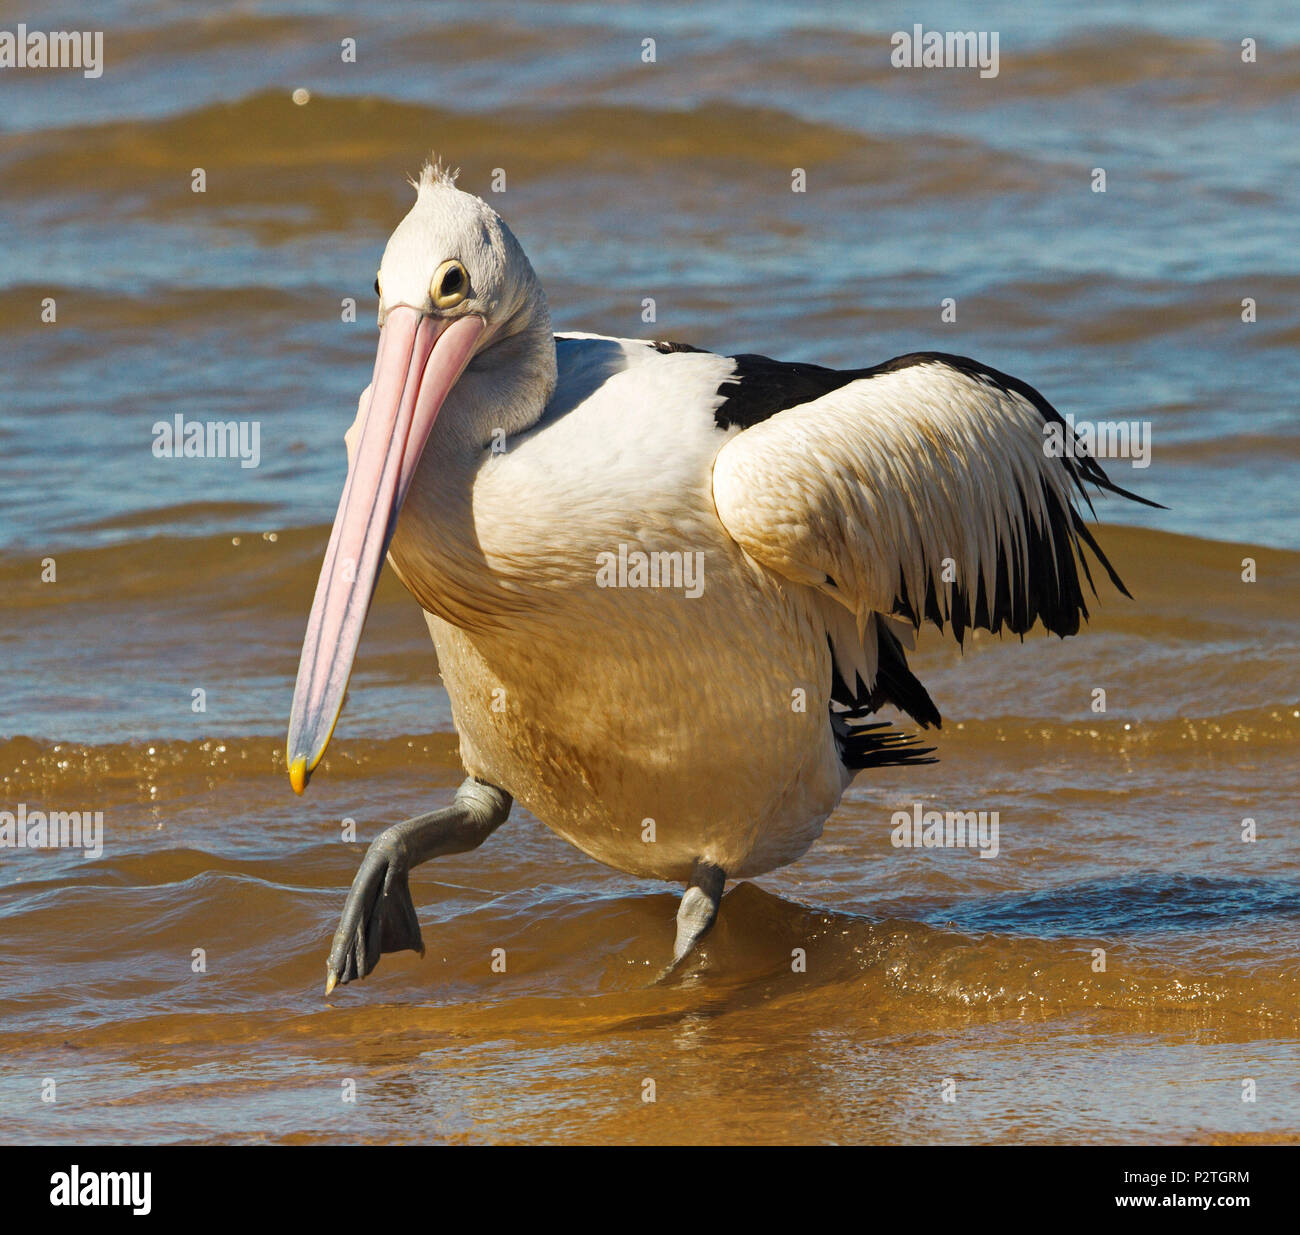 Australian pelican in humorous pose tip-toeing through ripples and shallow water of Pacific Ocean at Queensland beach - Stock Image